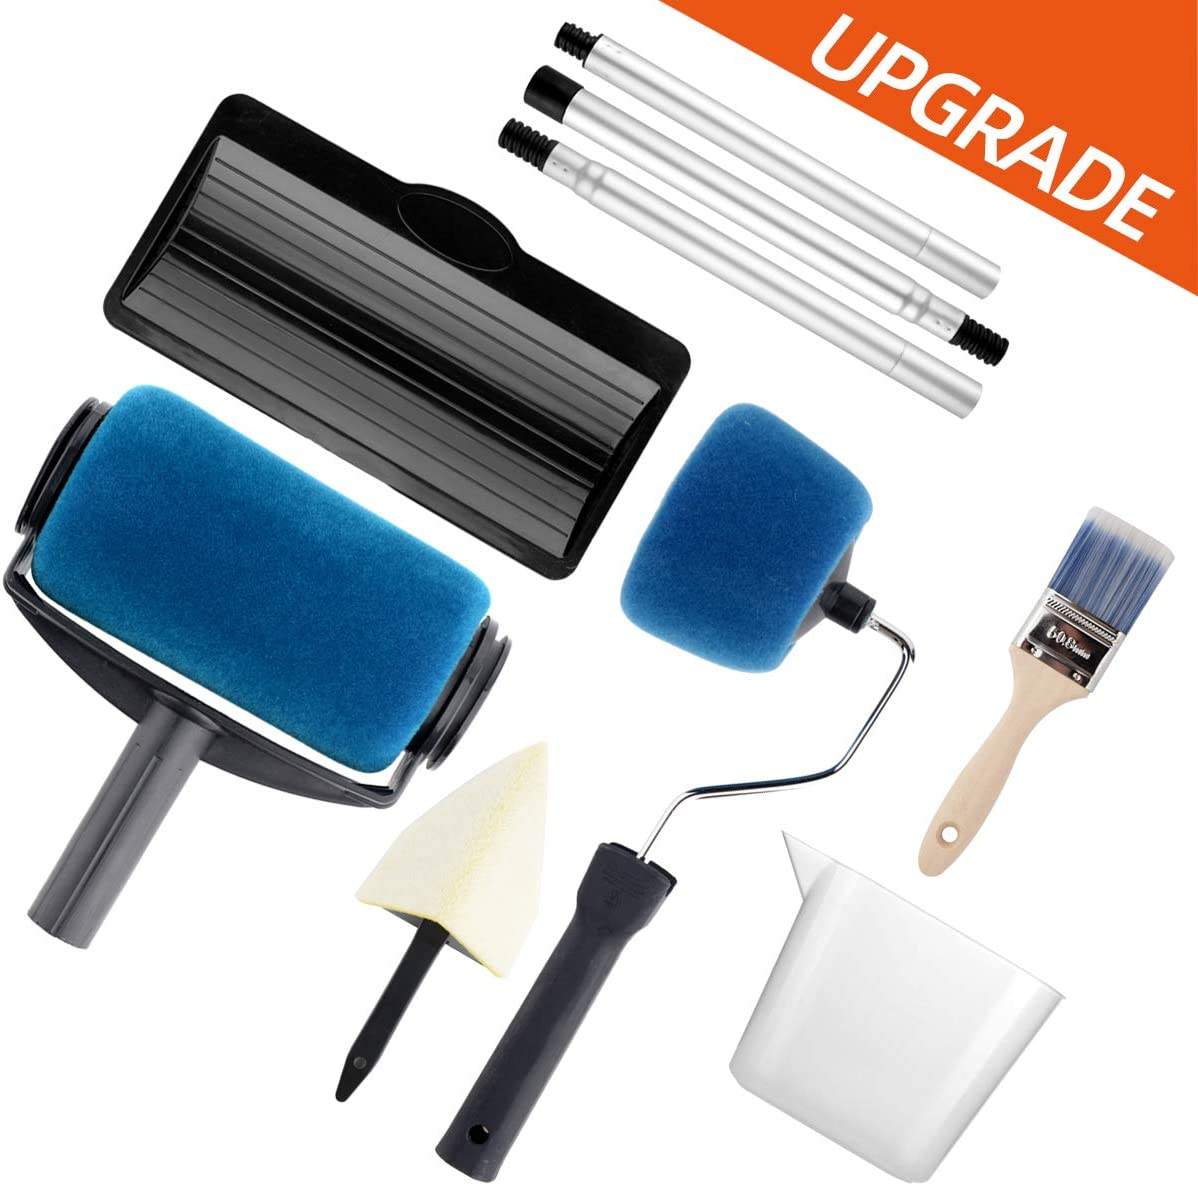 Paint Roller Set- Paint Brush, Paint Tray, Rollers Stick, Paint Edger, Paint Roller Pro, 9 Piece DIY Home Wall Decorate Runner Pro Painting Kit Tools